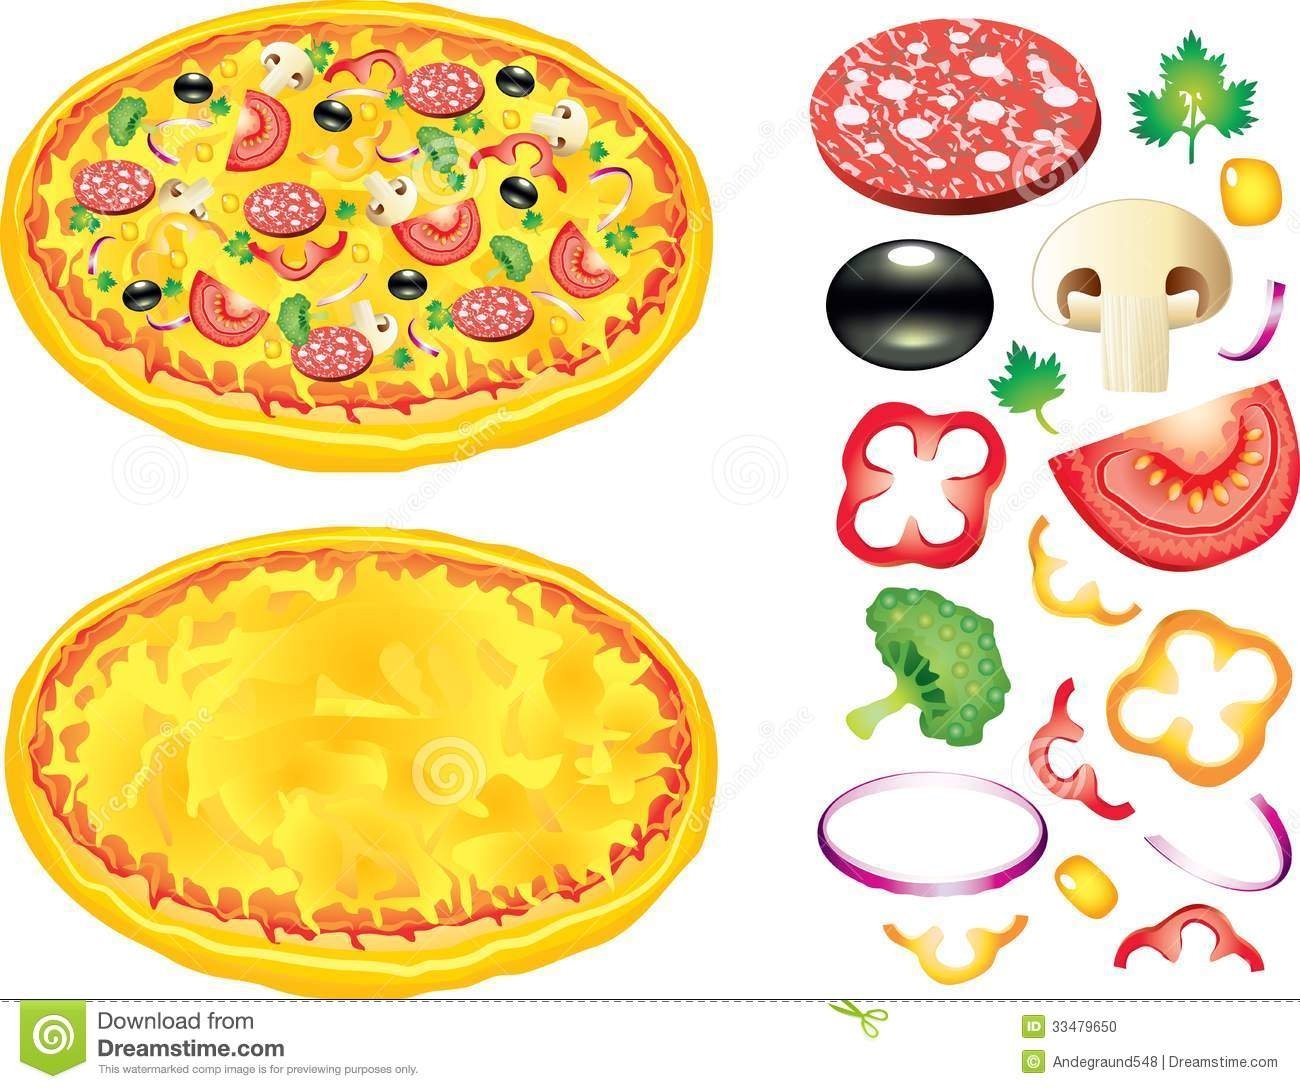 Pizza Toppings Clip Art Free .-Pizza Toppings Clip Art Free .-9